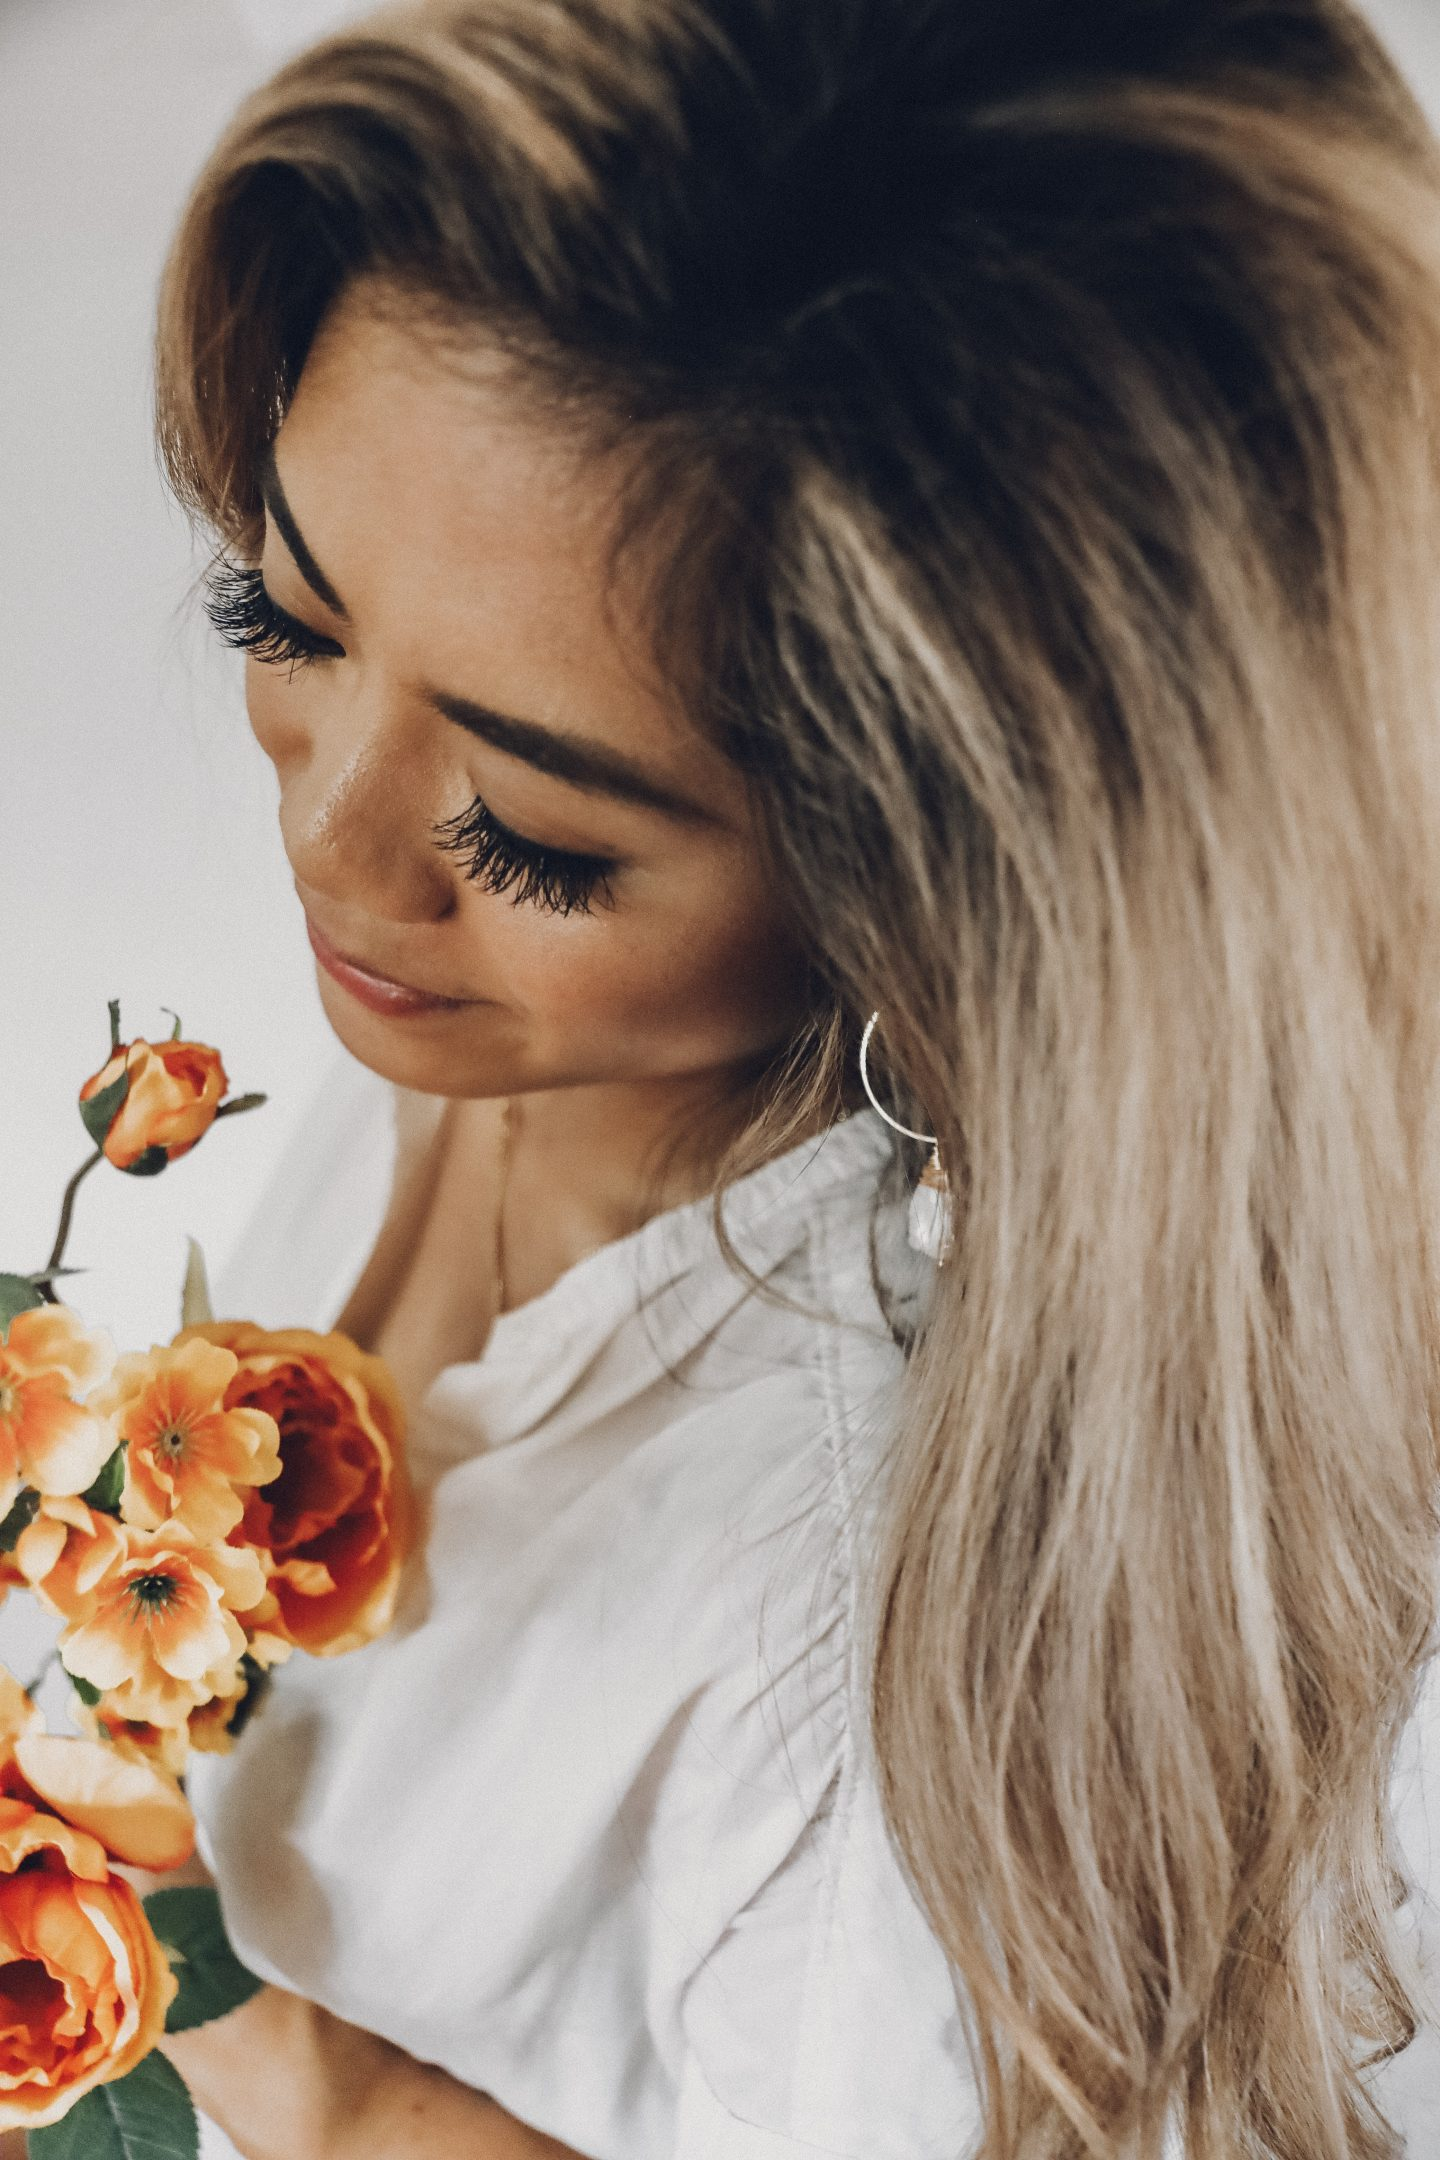 Girl with long hair angled at the camera, holding and looking down at orange flowers